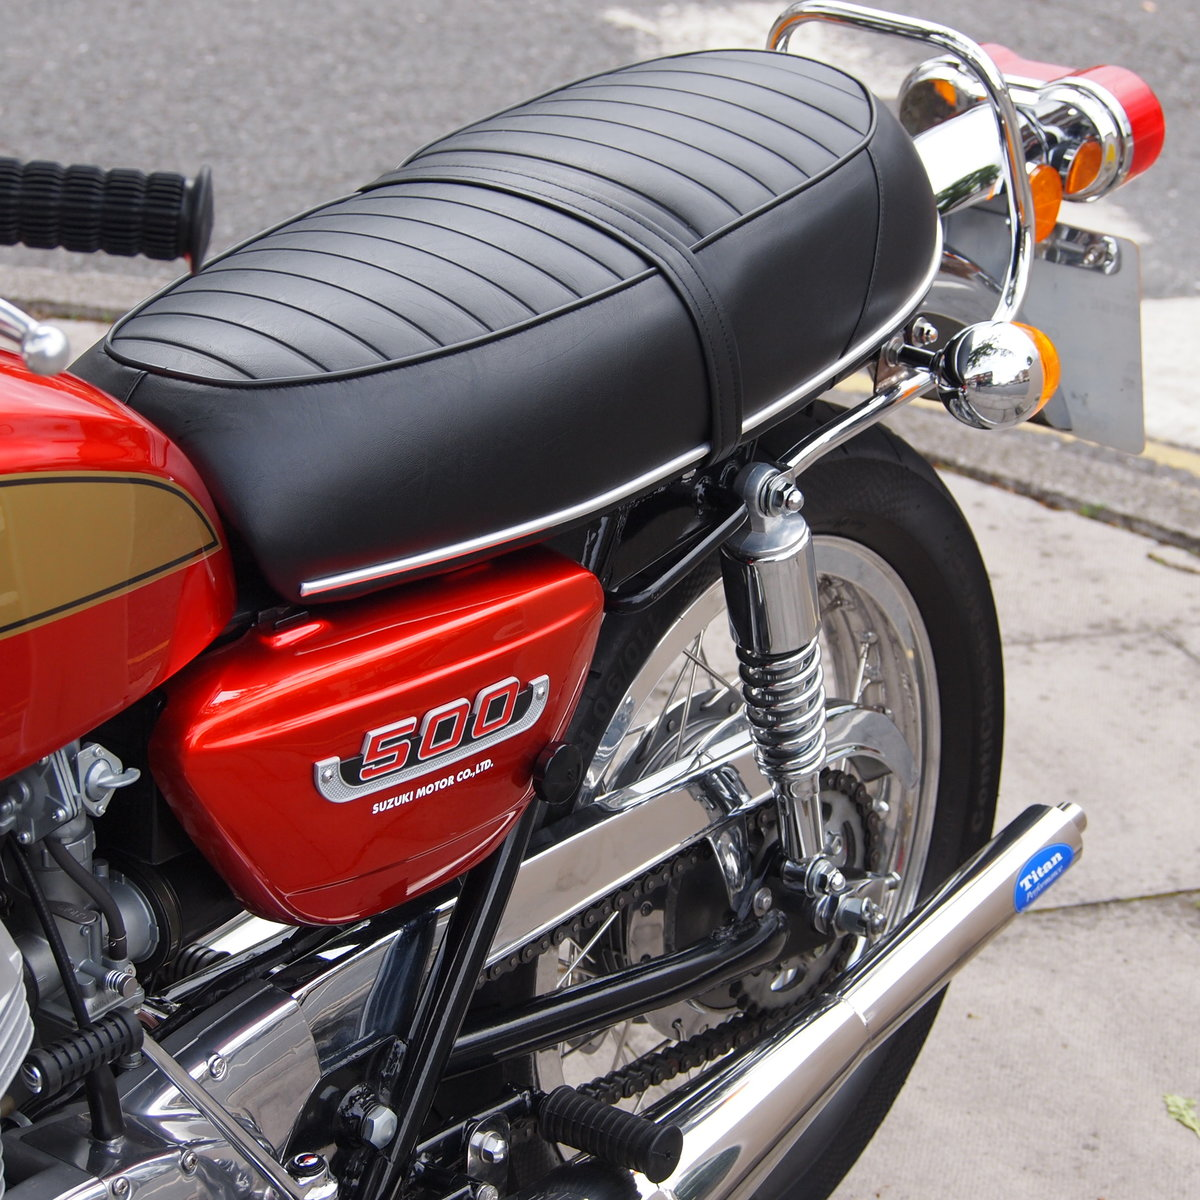 1974 Suzuki T500 In Beautiful Condition, RESERVED FOR TERRY. SOLD (picture 4 of 6)